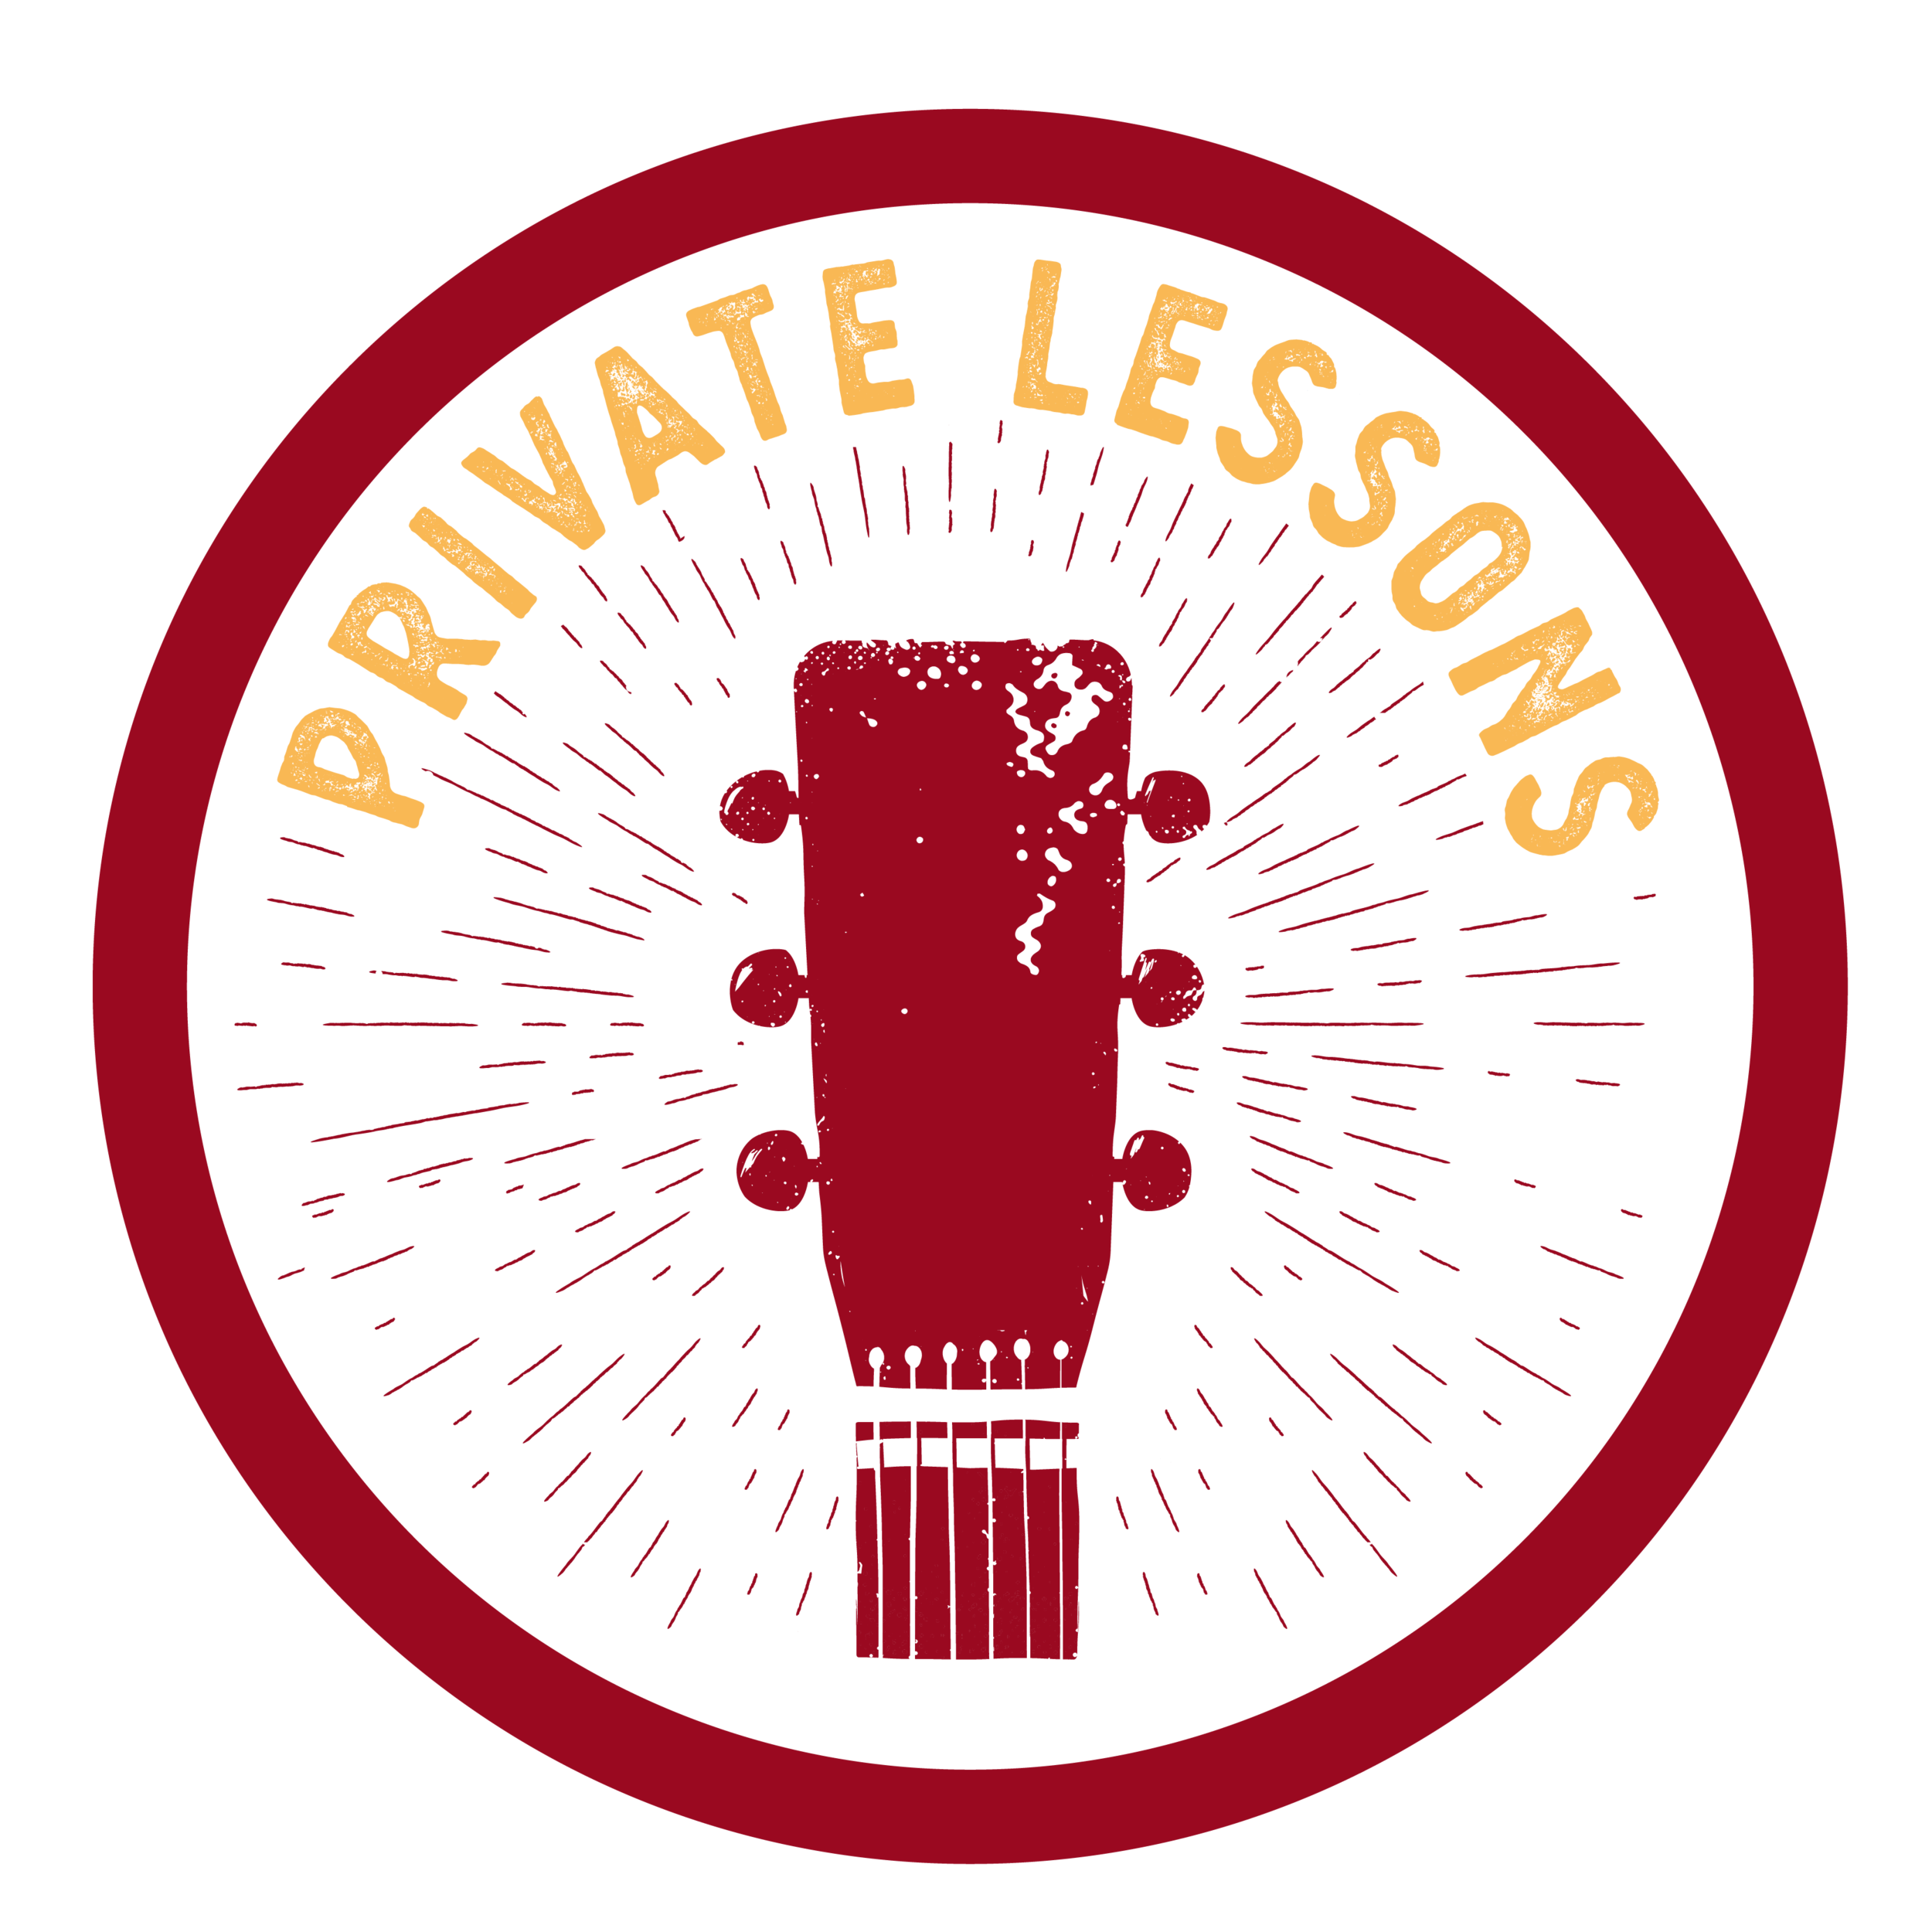 JWY_Classes_PrivateLessons.png